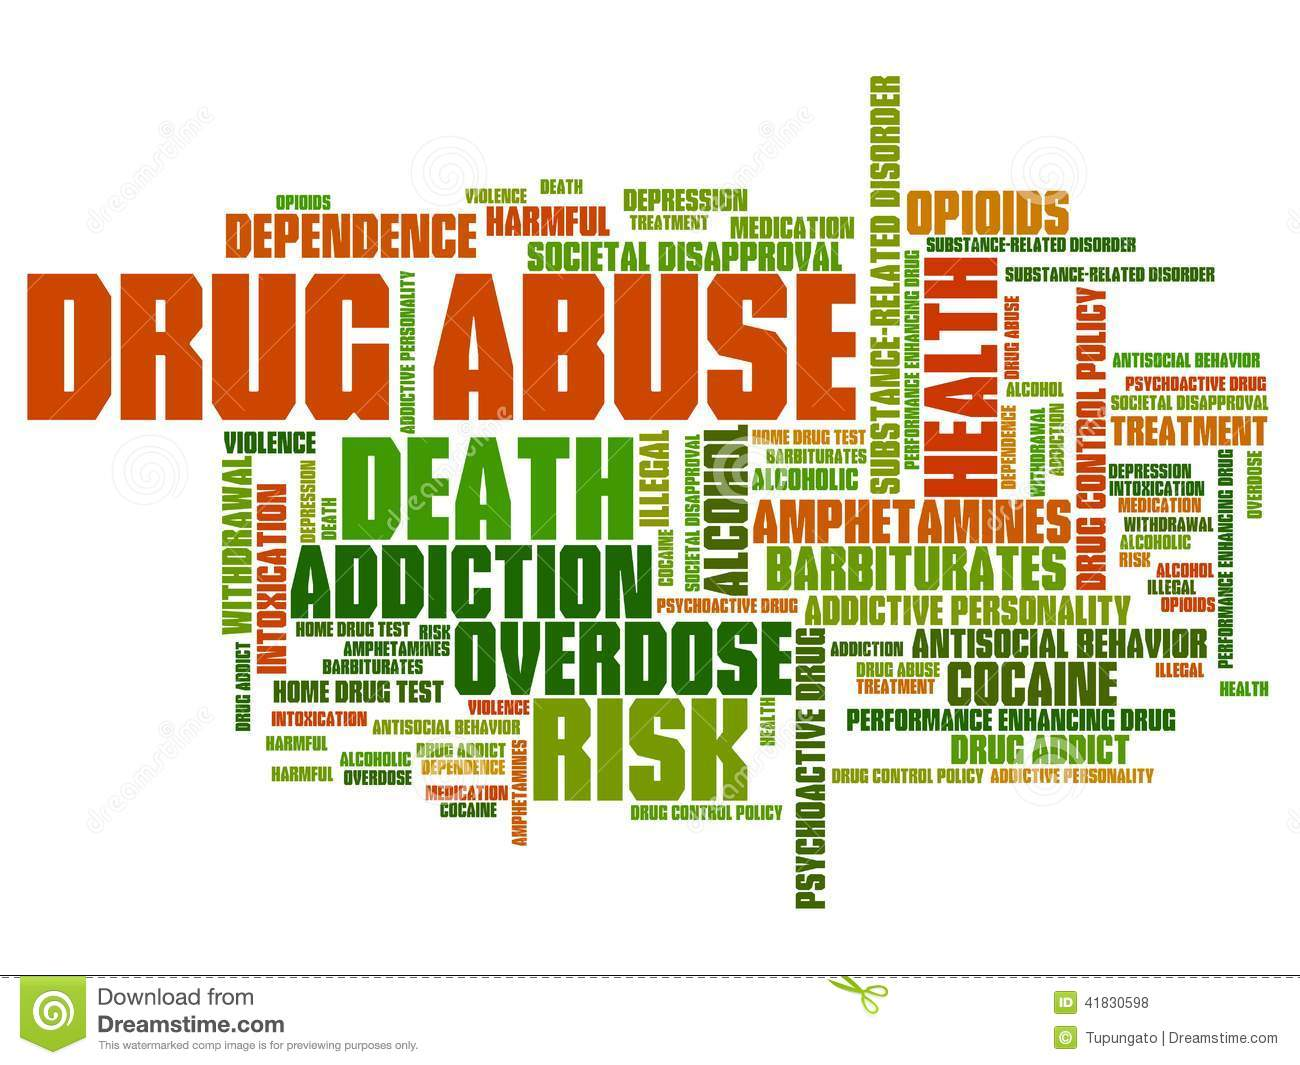 dysphoria of heroin addiction Drug addiction is a worldwide societal problem and public health burden, and results from recreational drug use that develops into a complex brain disorder.